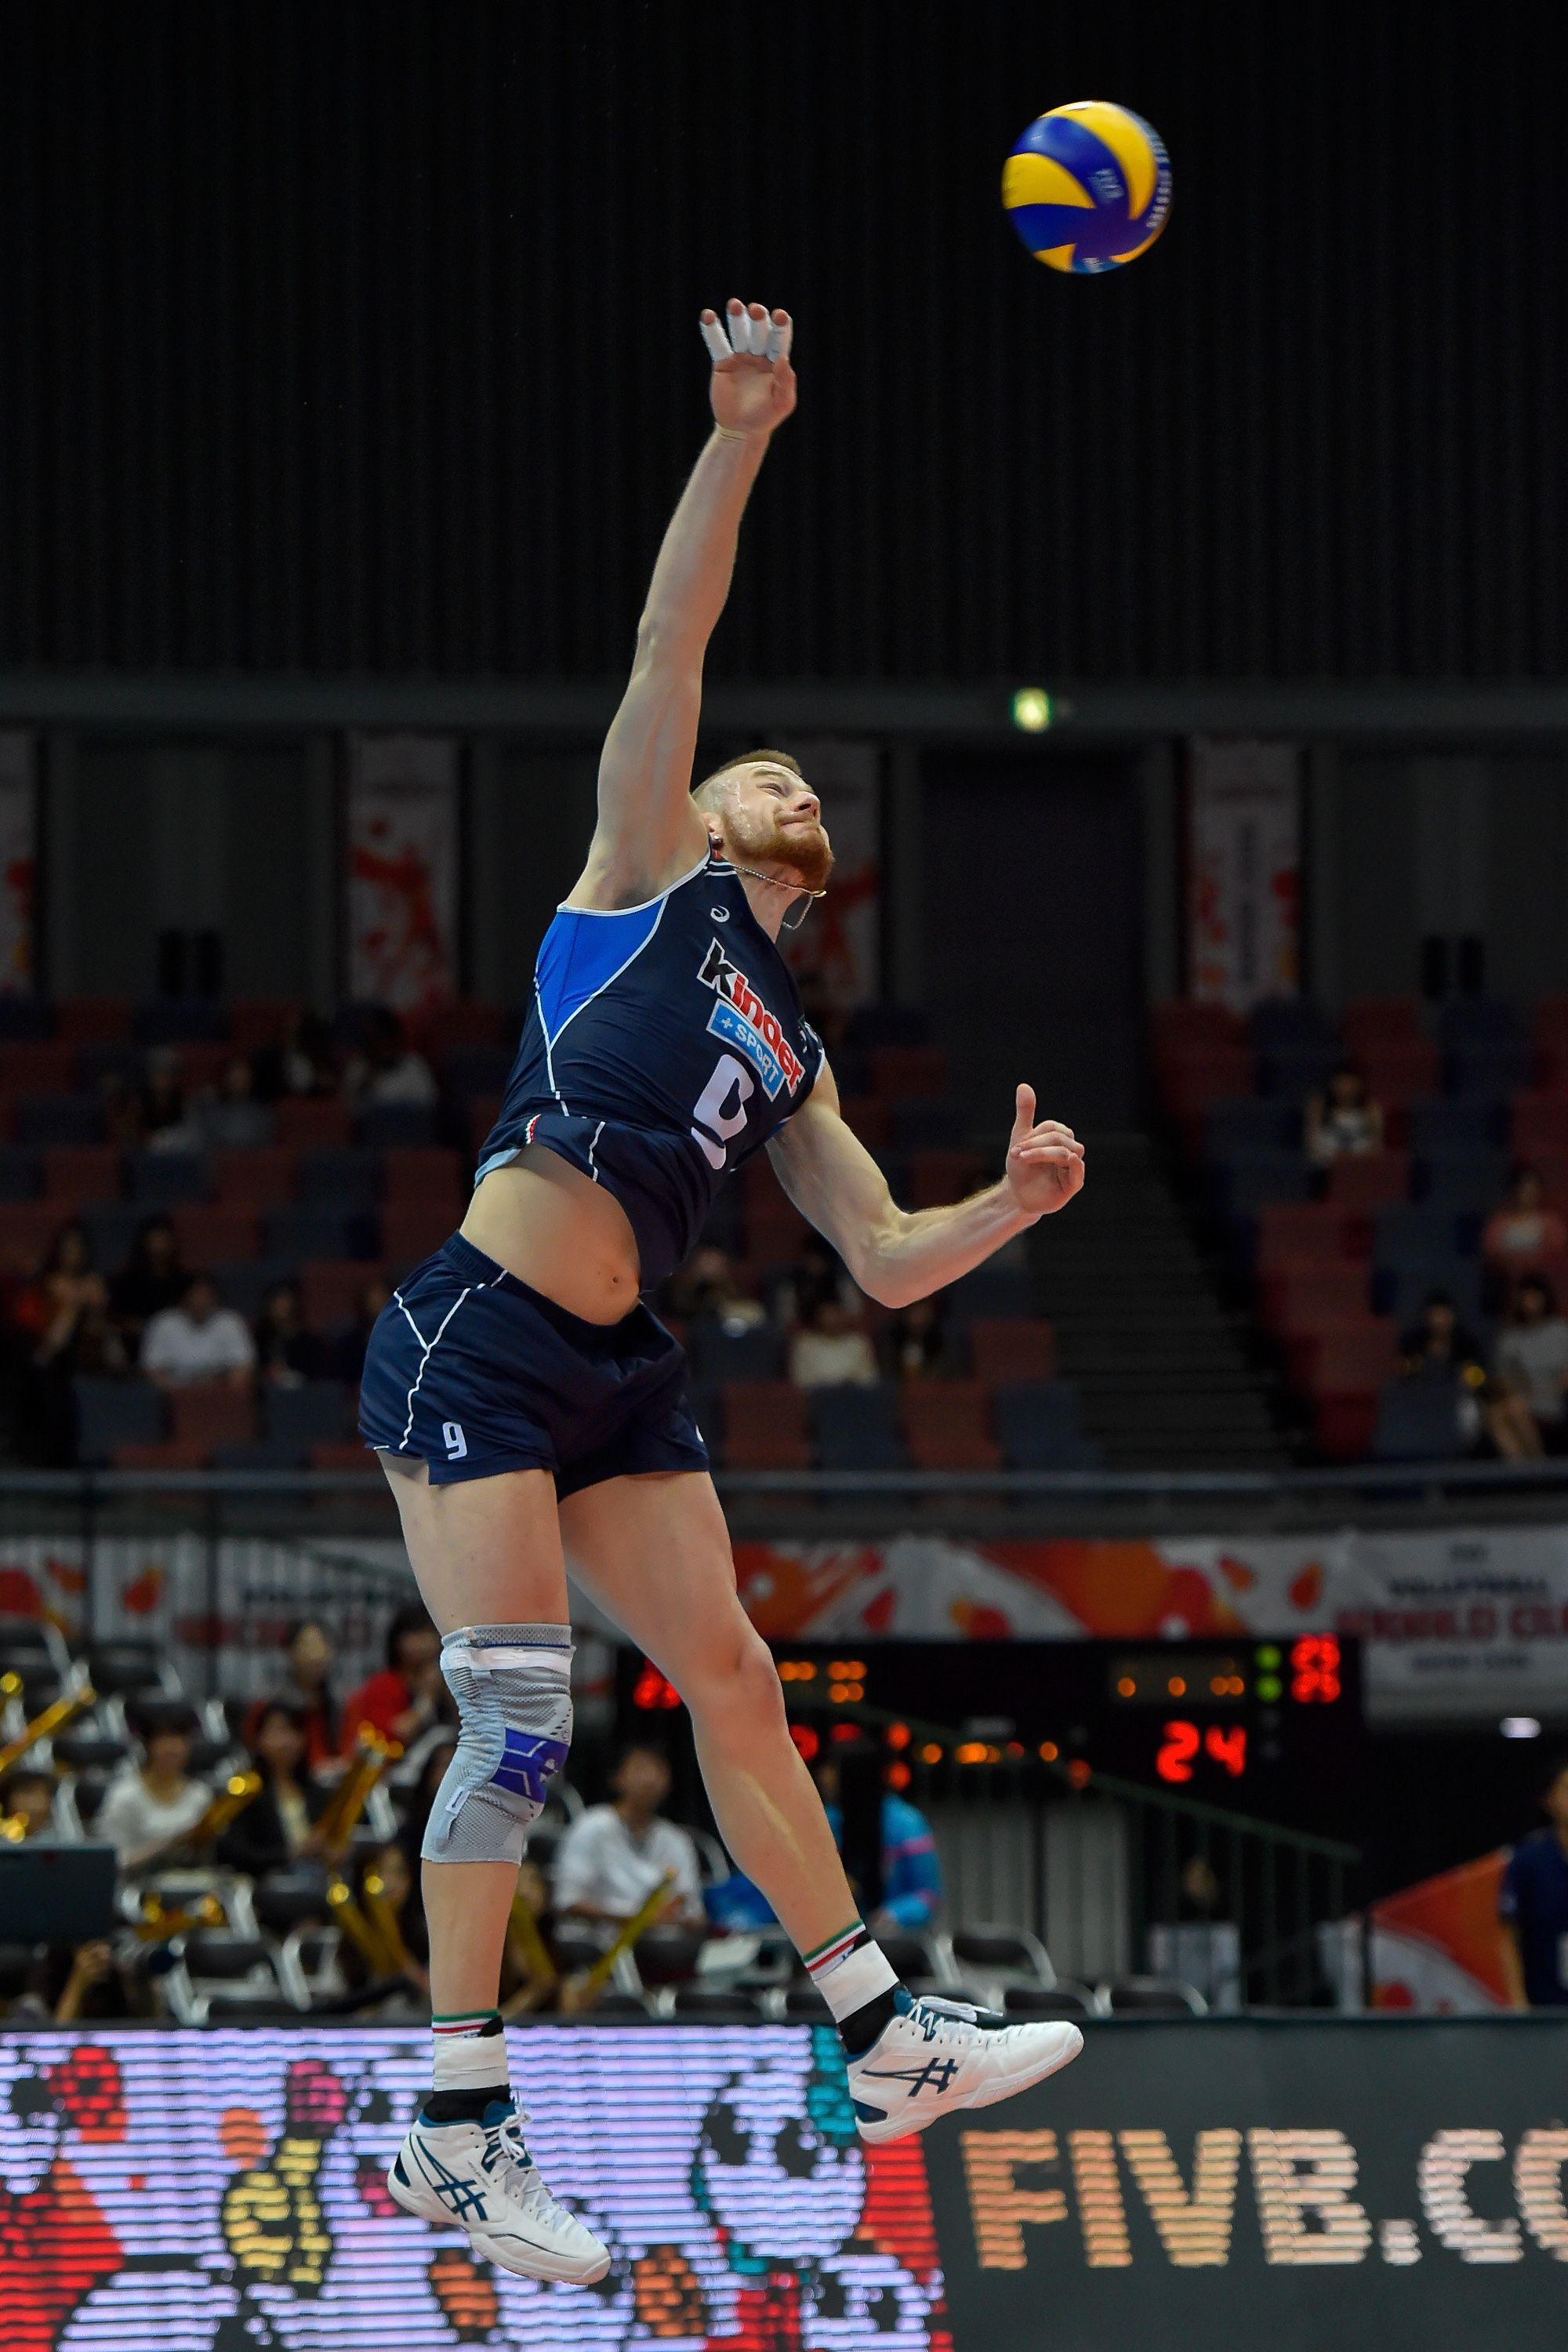 Ivan Zaytsev Serves The Ball Against Tunisia Volleyball Volley Basketball Court